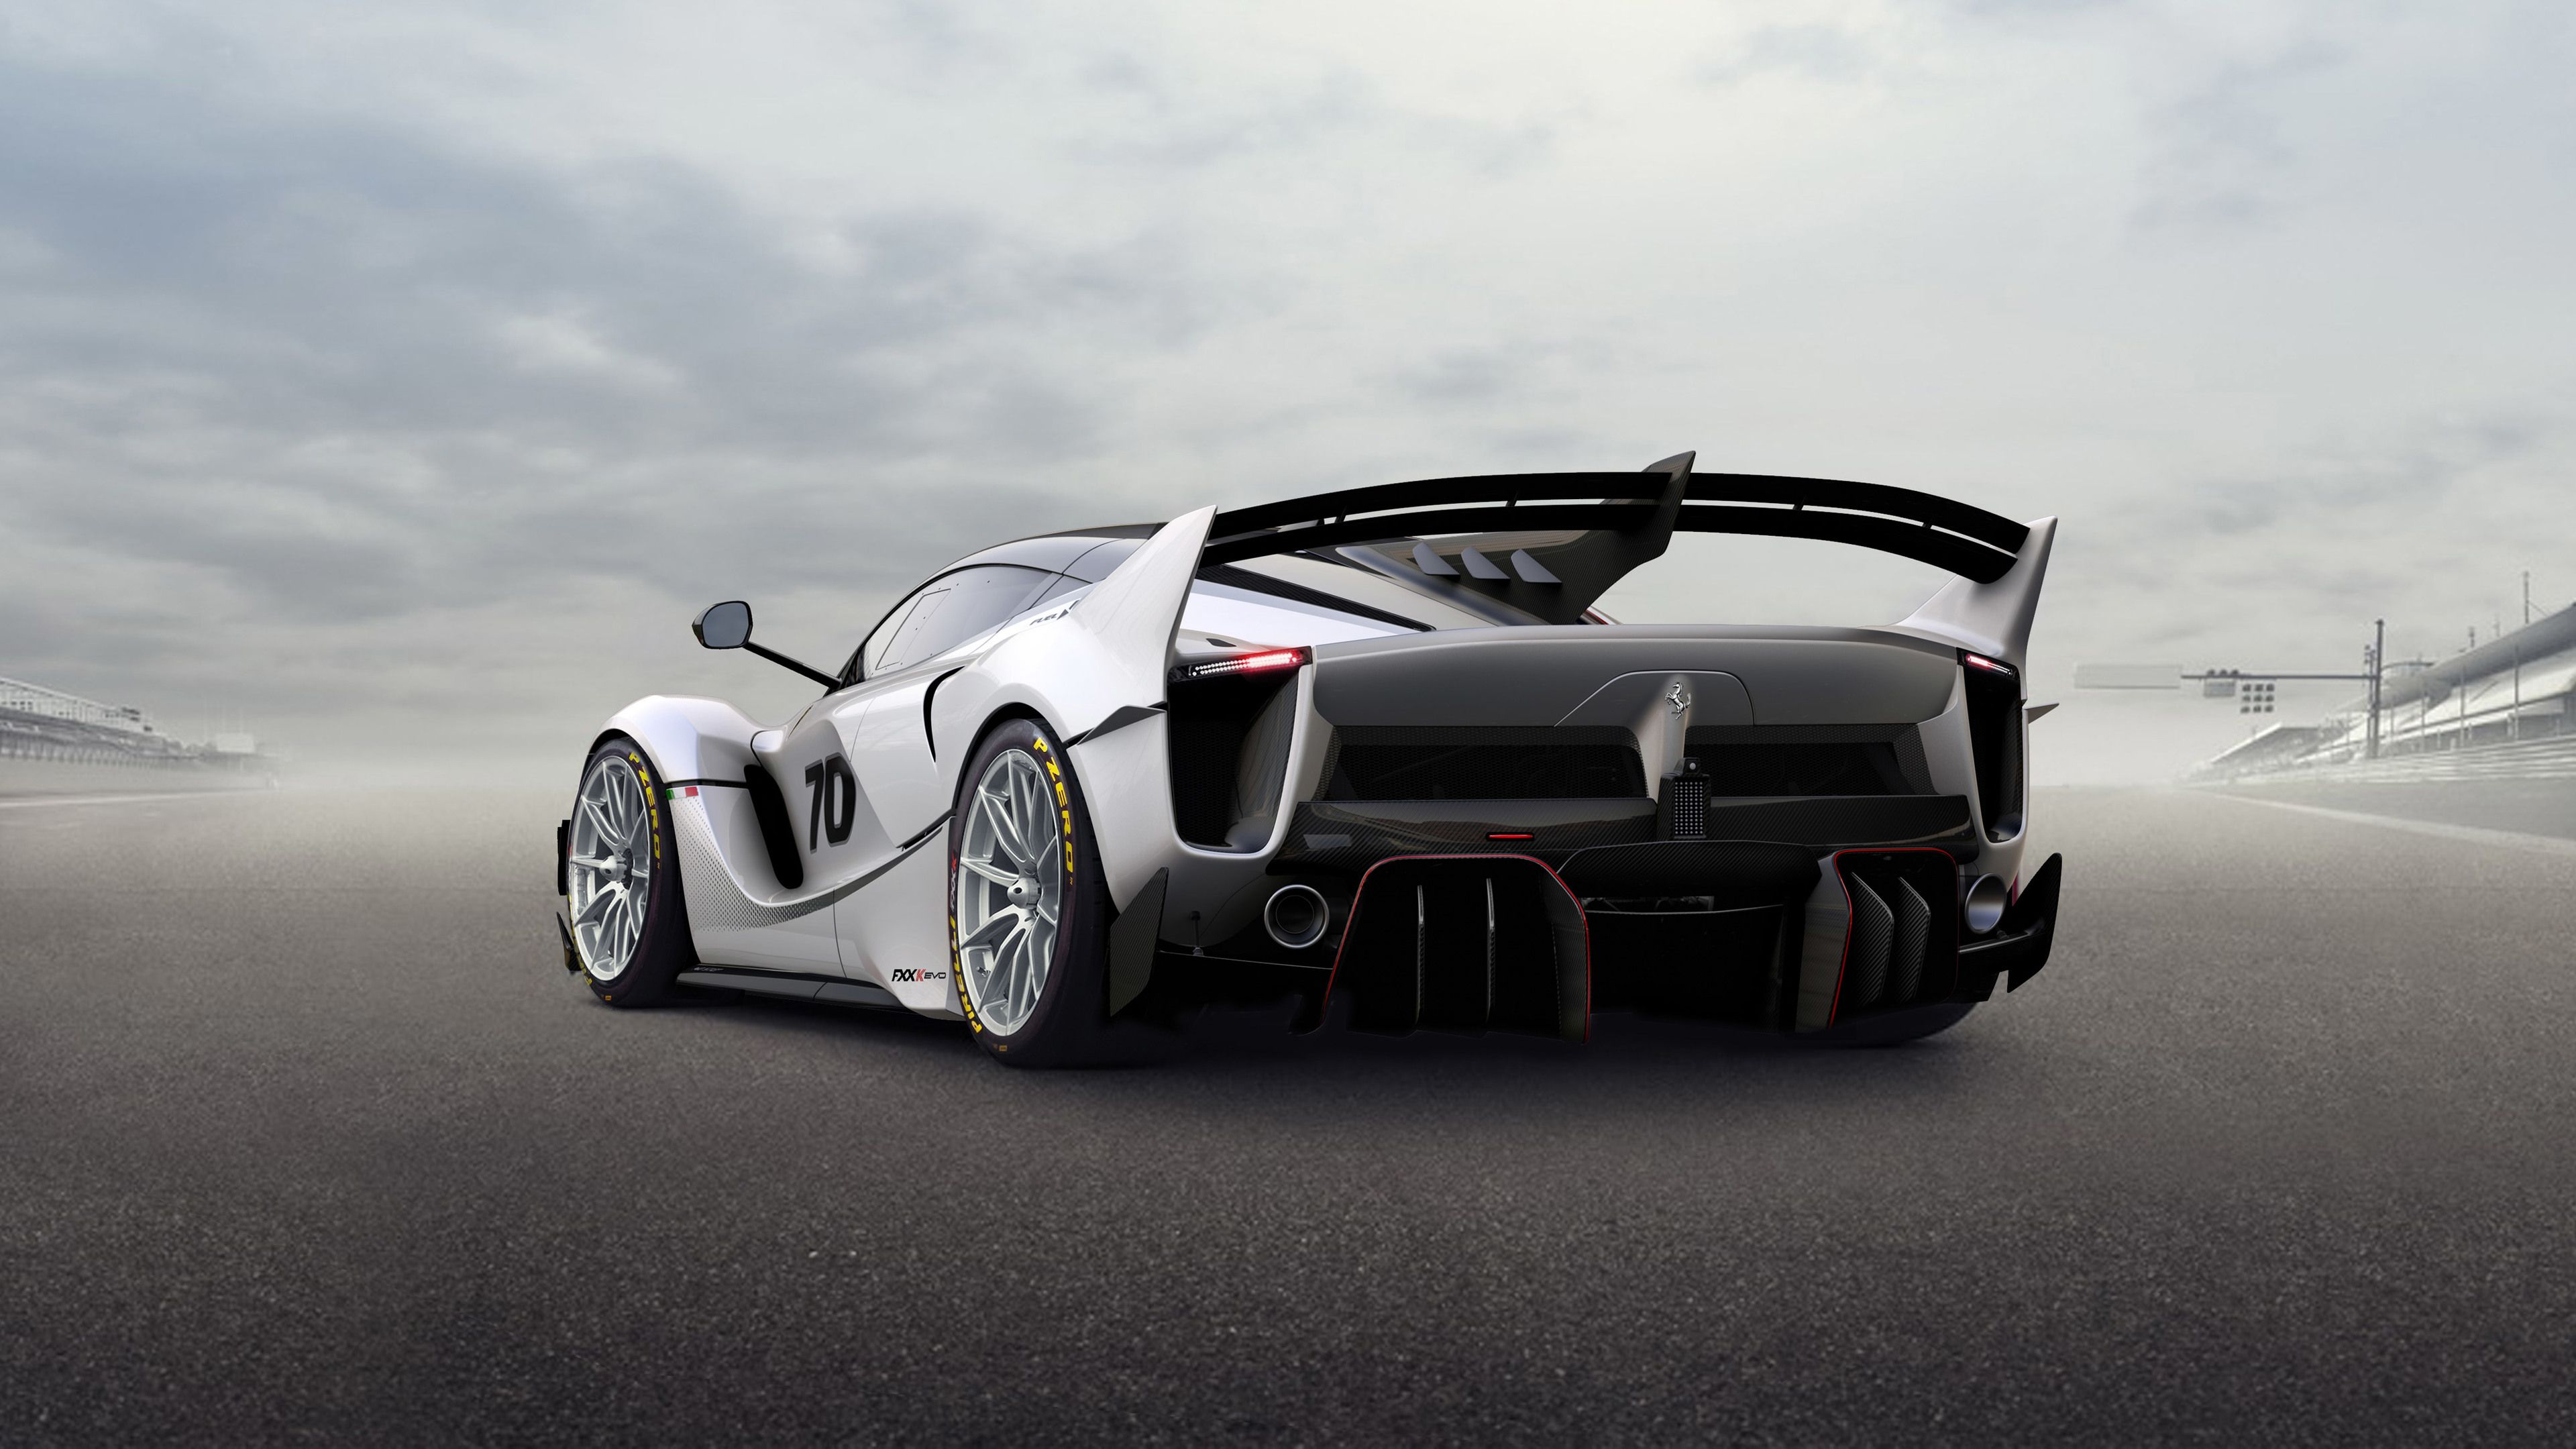 Ferrari FXX K Evo 2018 hd-wallpapers, ferrari wallpapers, ferrari fxx k wallpapers, cars wallpapers, 4k-wallpapers, 2018 cars wallpapers #ferrarifxx